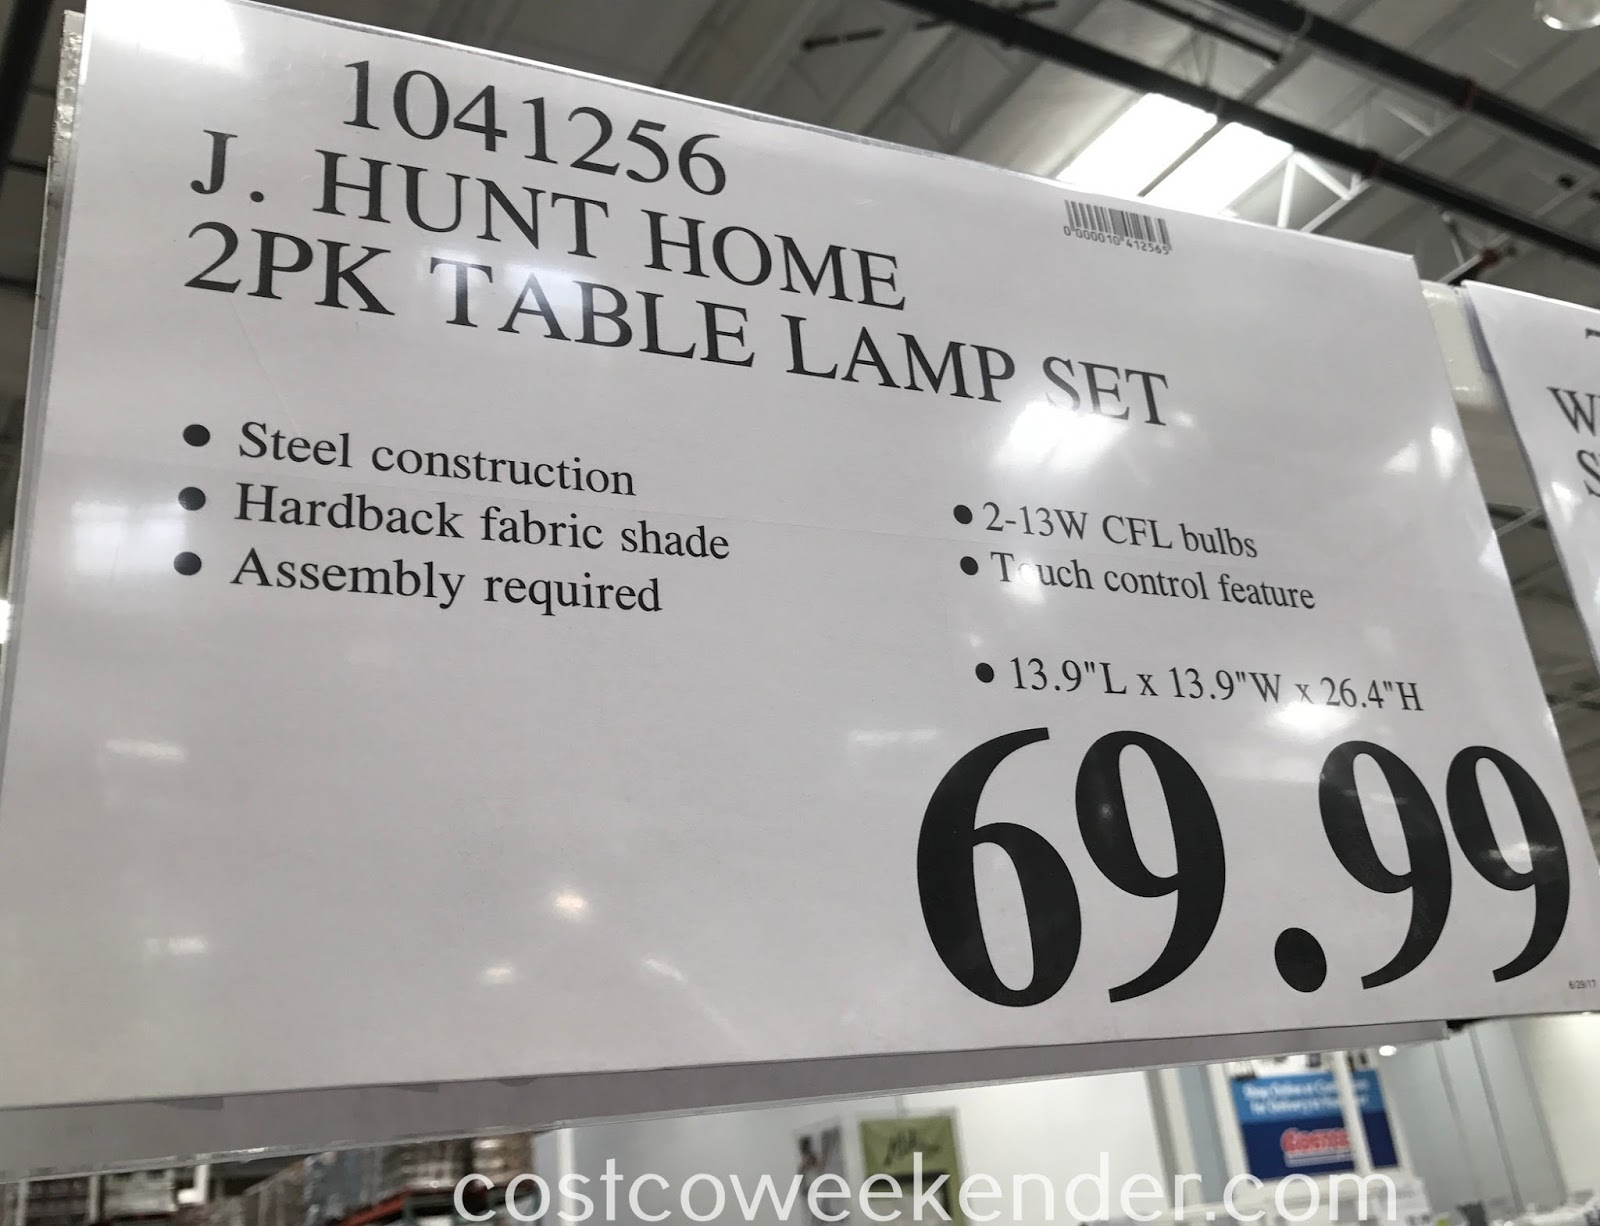 Deal for 2 J. Hunt Home Touch Control Table Lamps at Costco